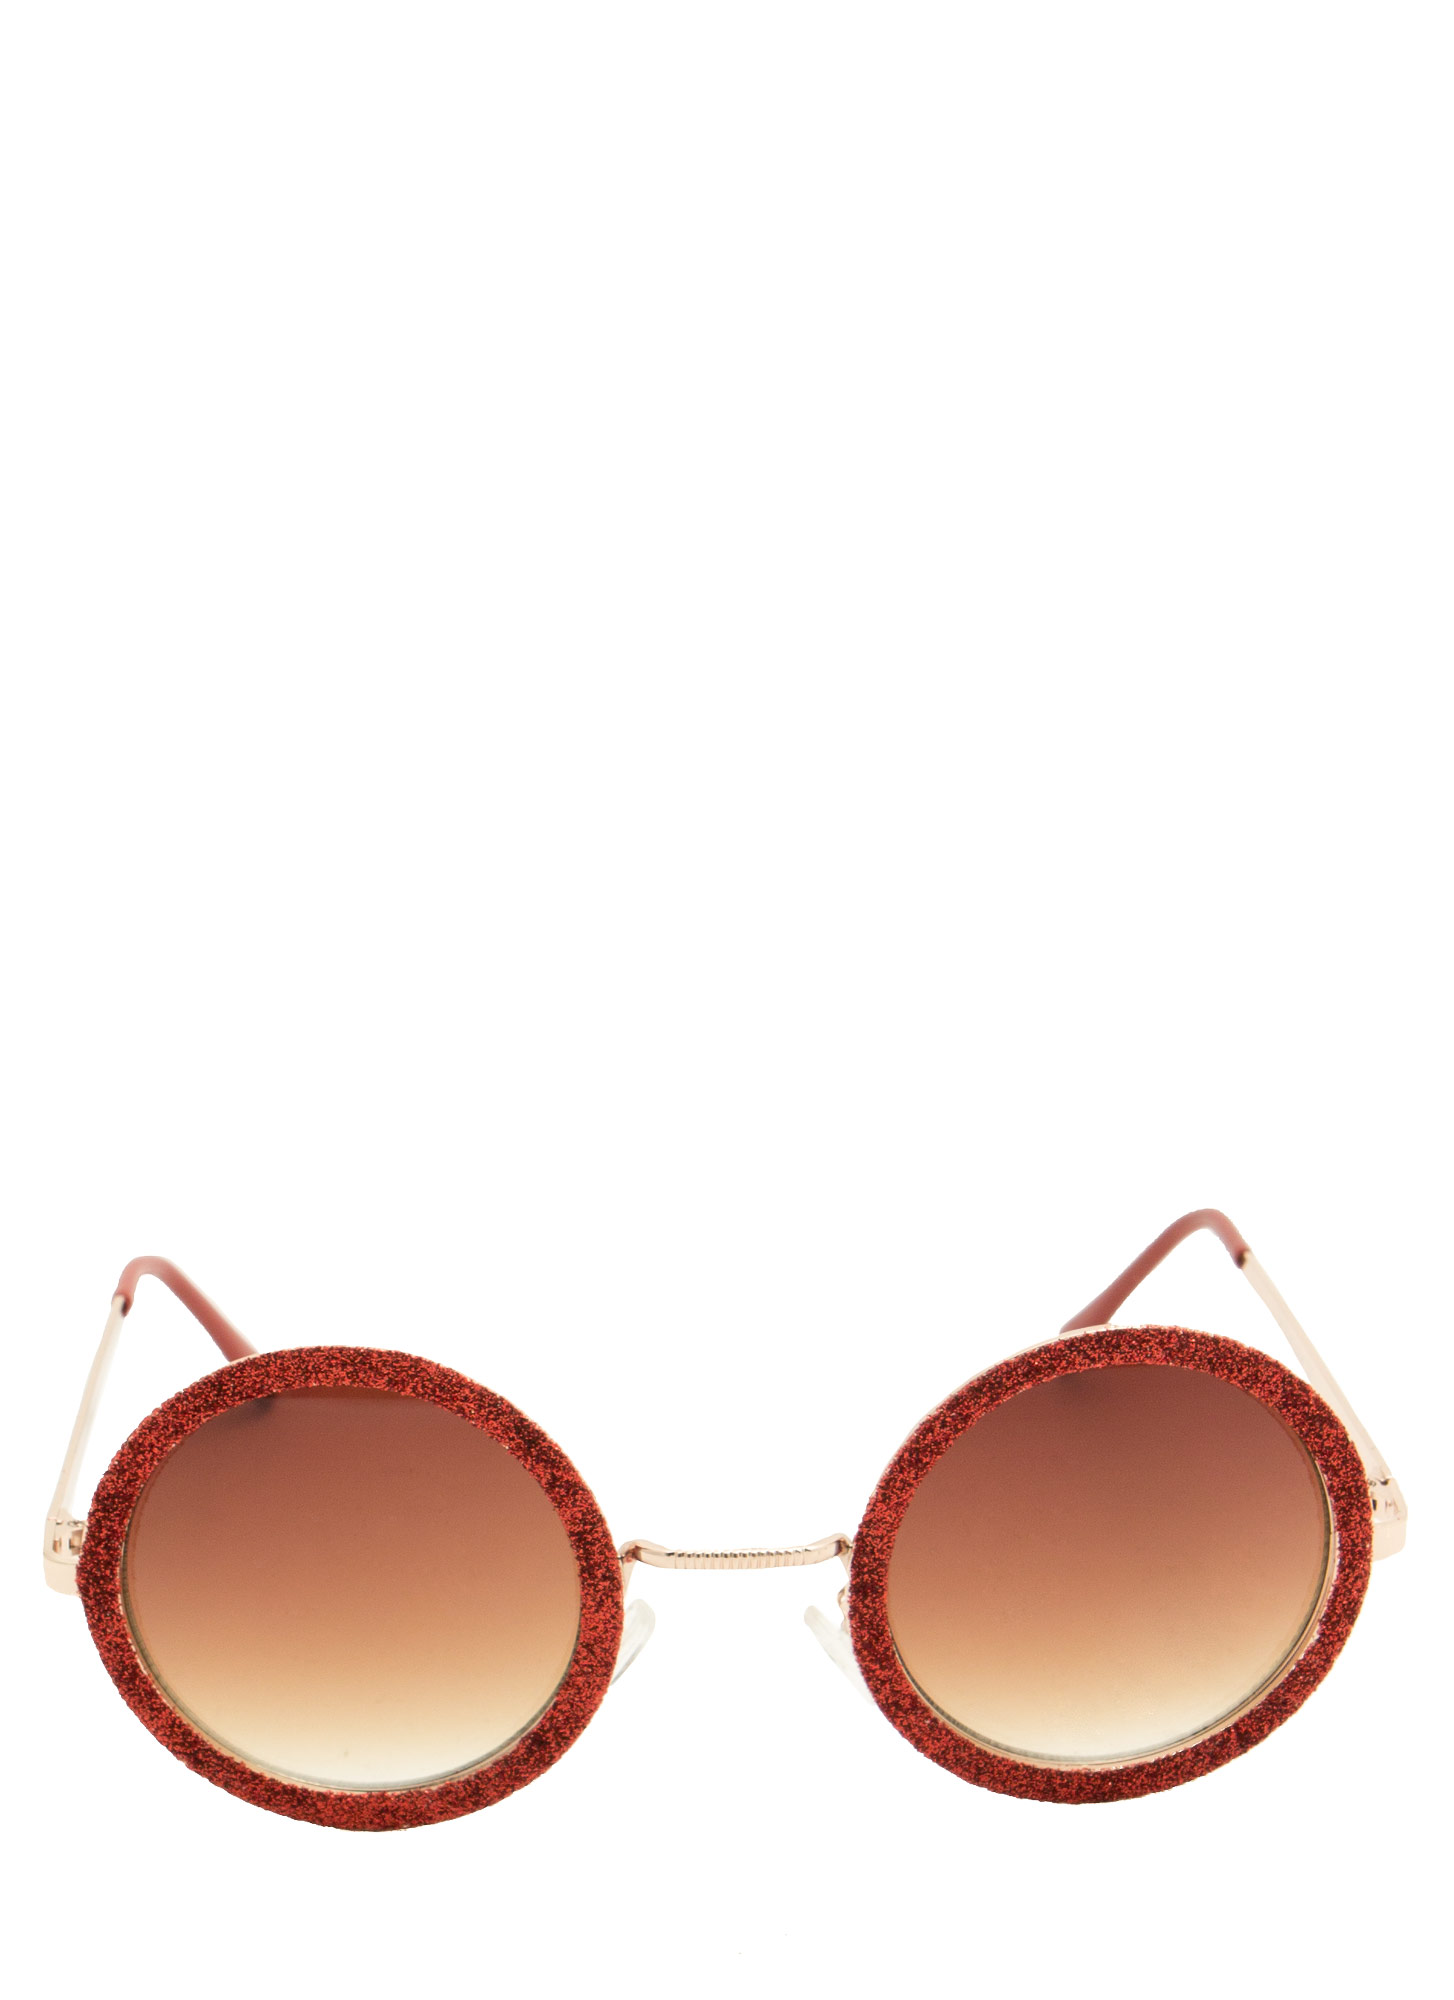 Glitzy Round Sunglasses RED